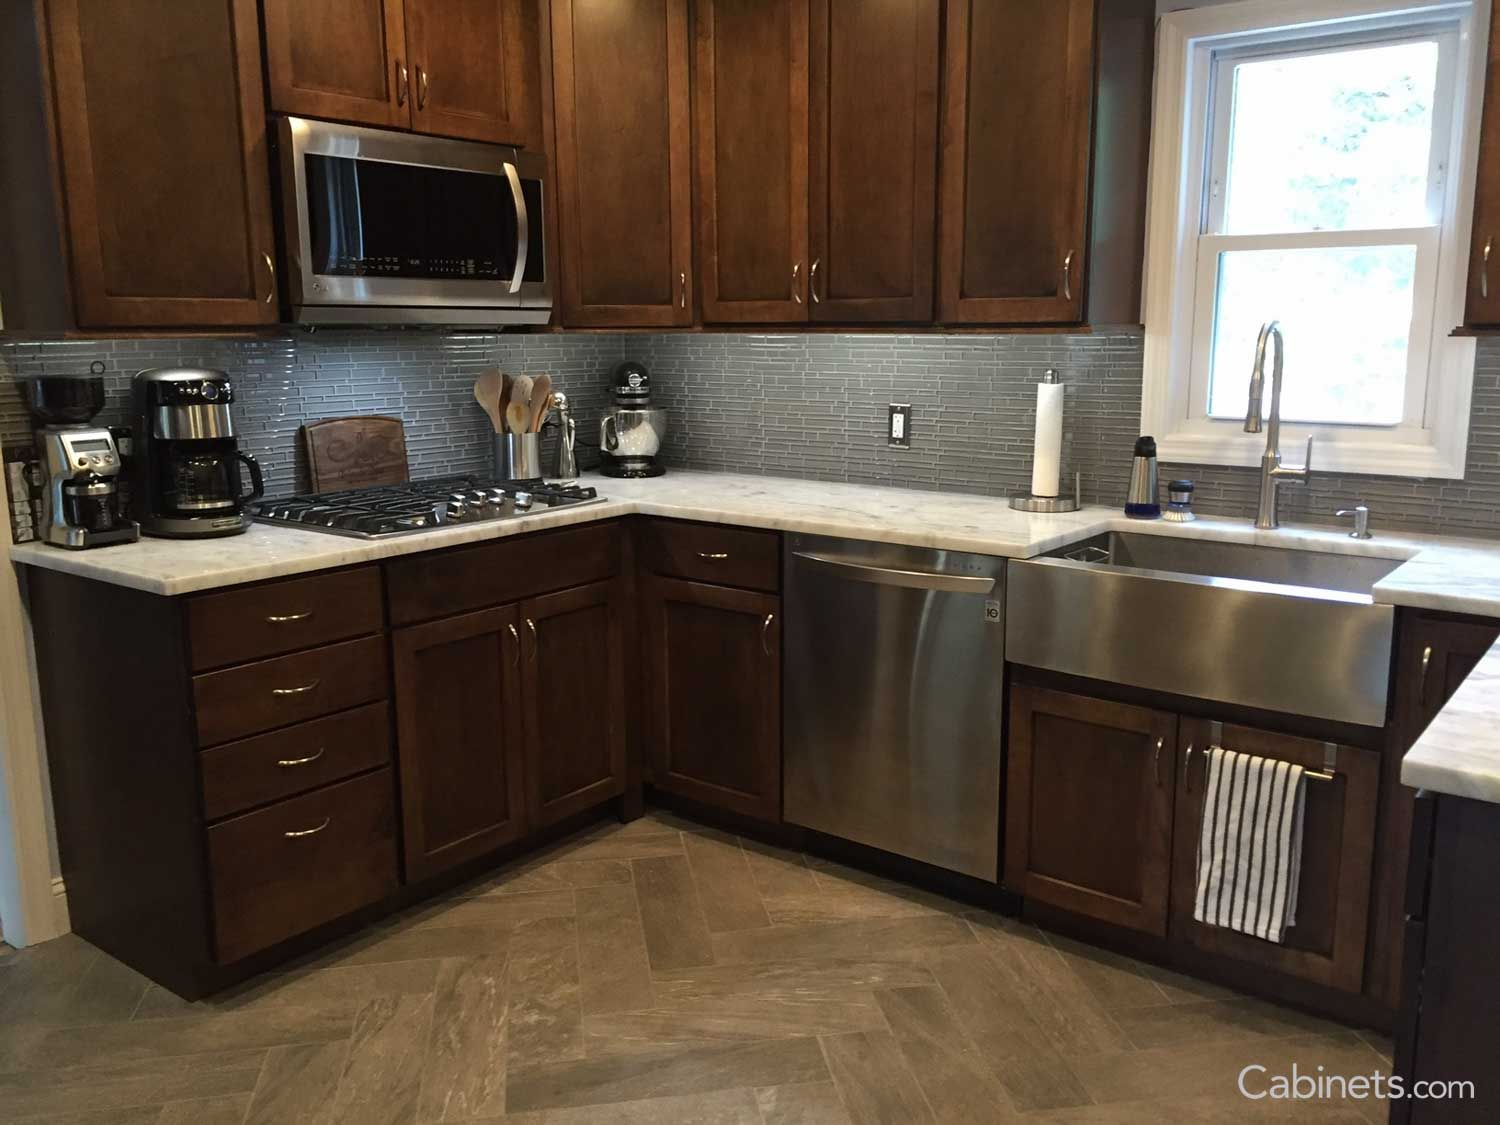 Colonial Maple Pecan Kitchen Design Online Kitchen Cabinets Cozy Living Room Furniture